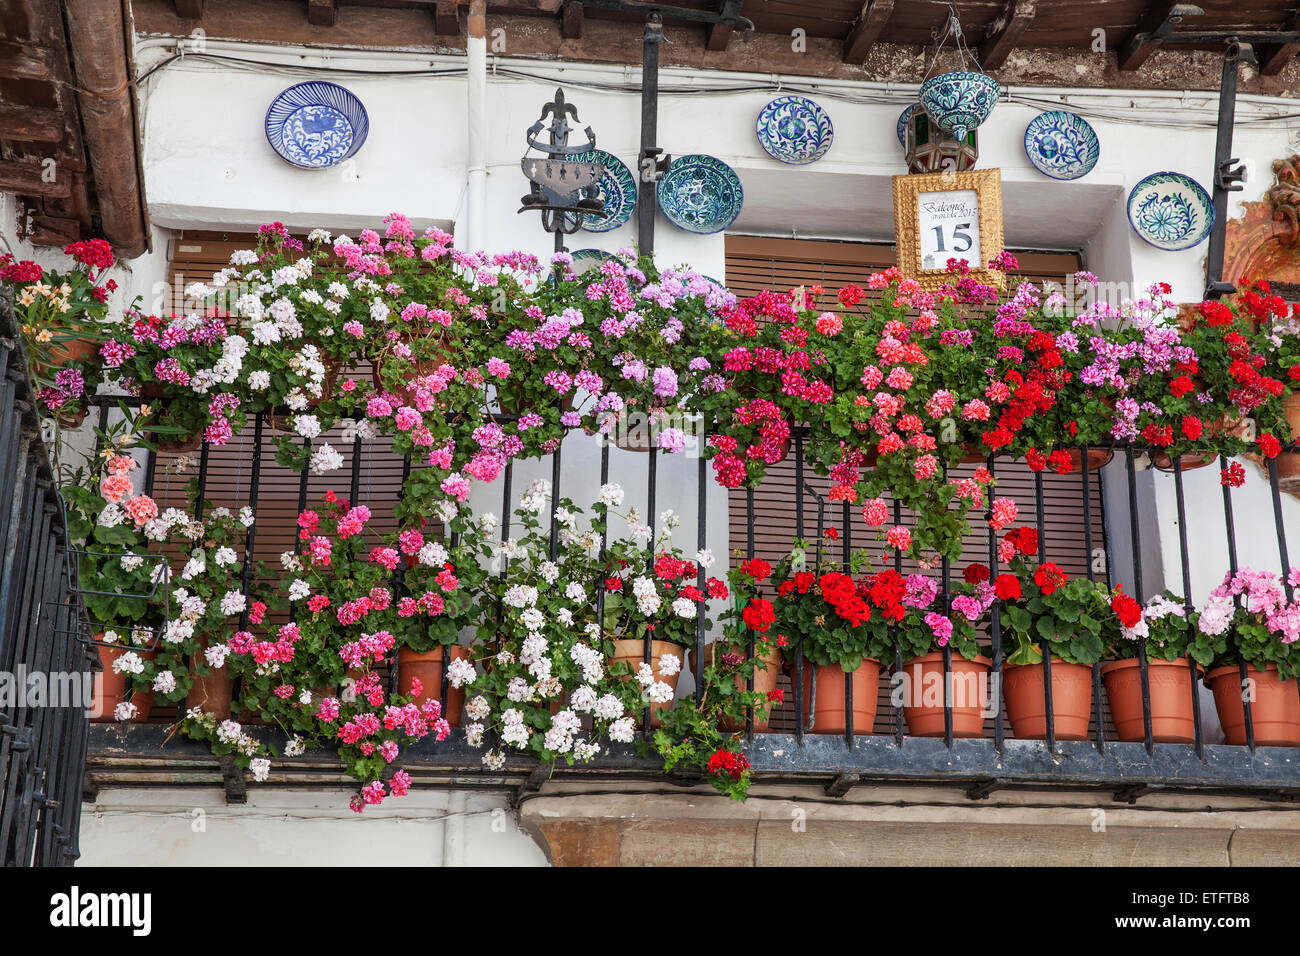 Geranium flower pots displayed on prize winning balcony - Granada, Andalucia, Spain - Stock Image